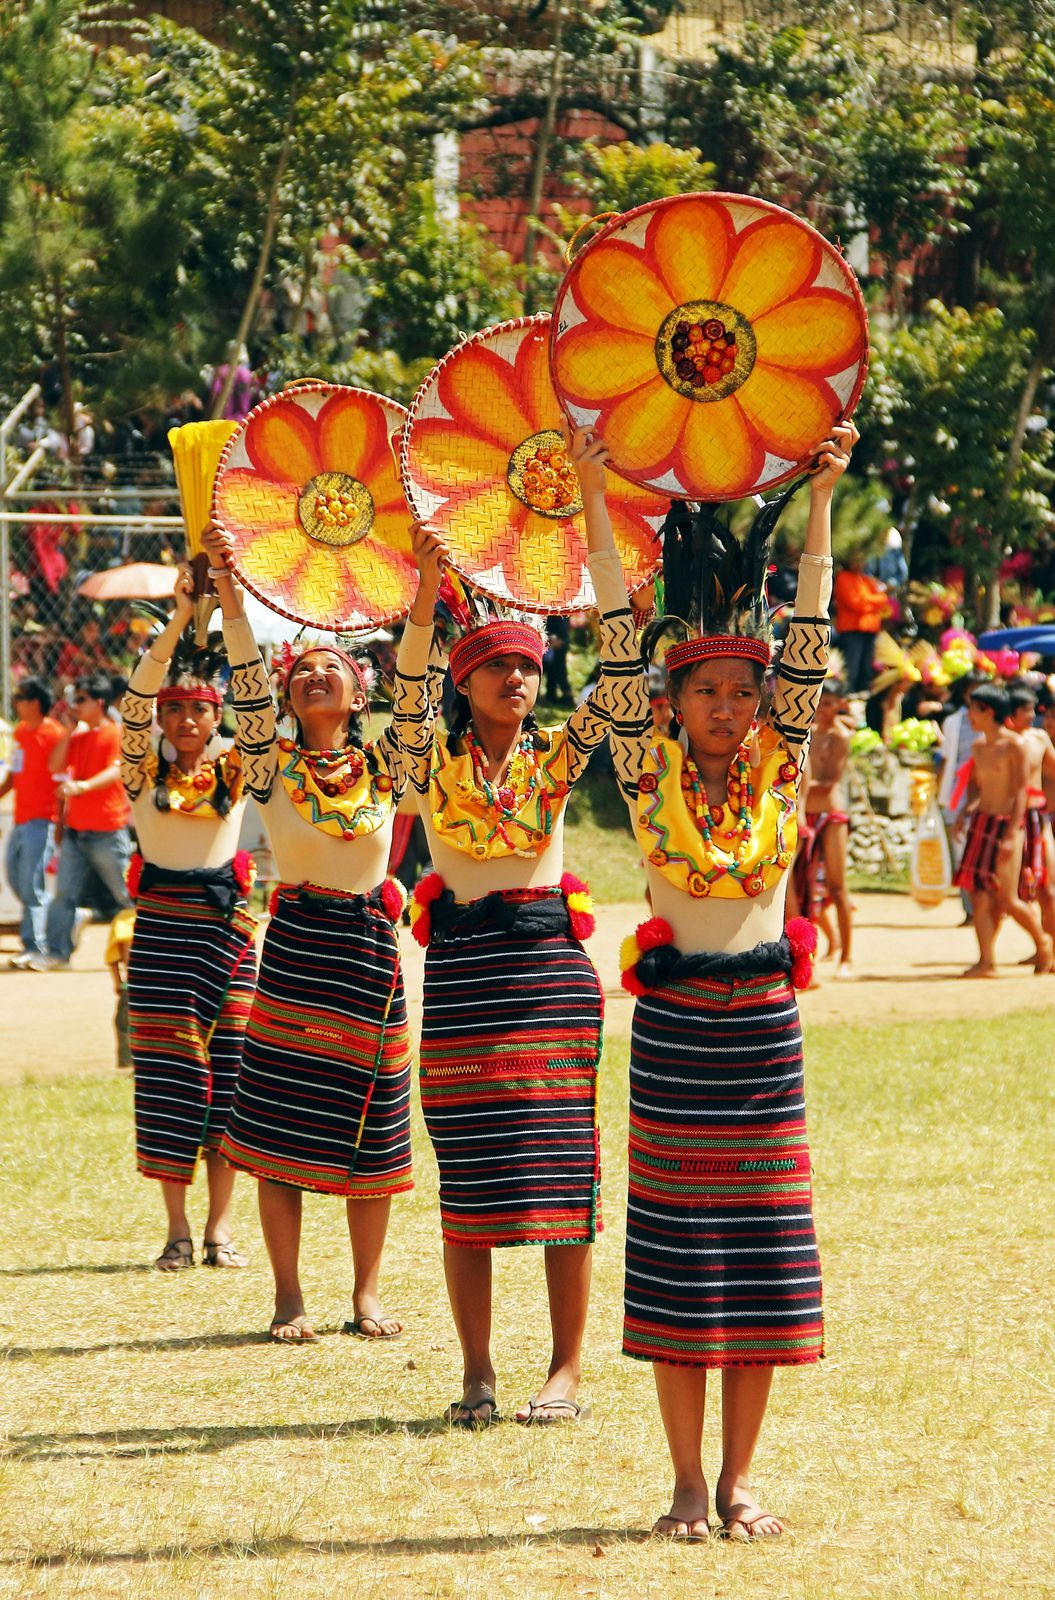 Ifugao dance from the mountainous region of Northern